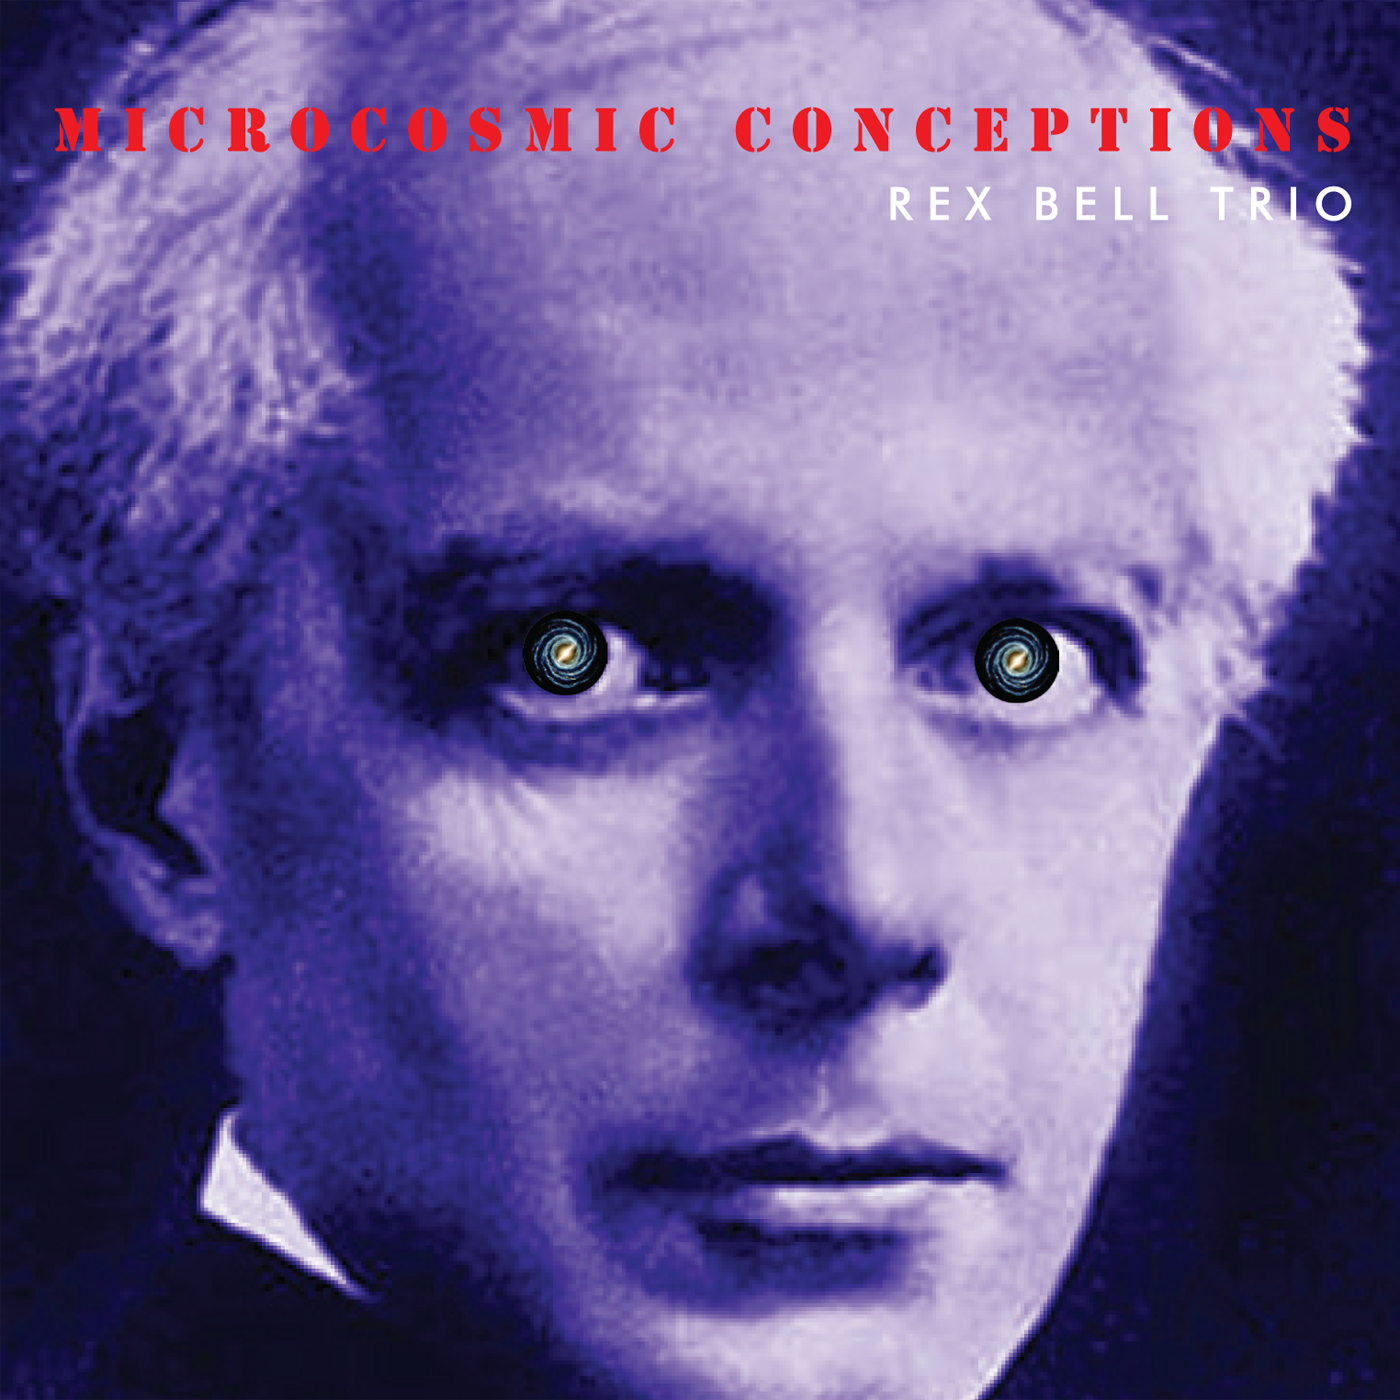 Rex-Bell-Trio-Microcosmic-Conceptions-CD-Baby